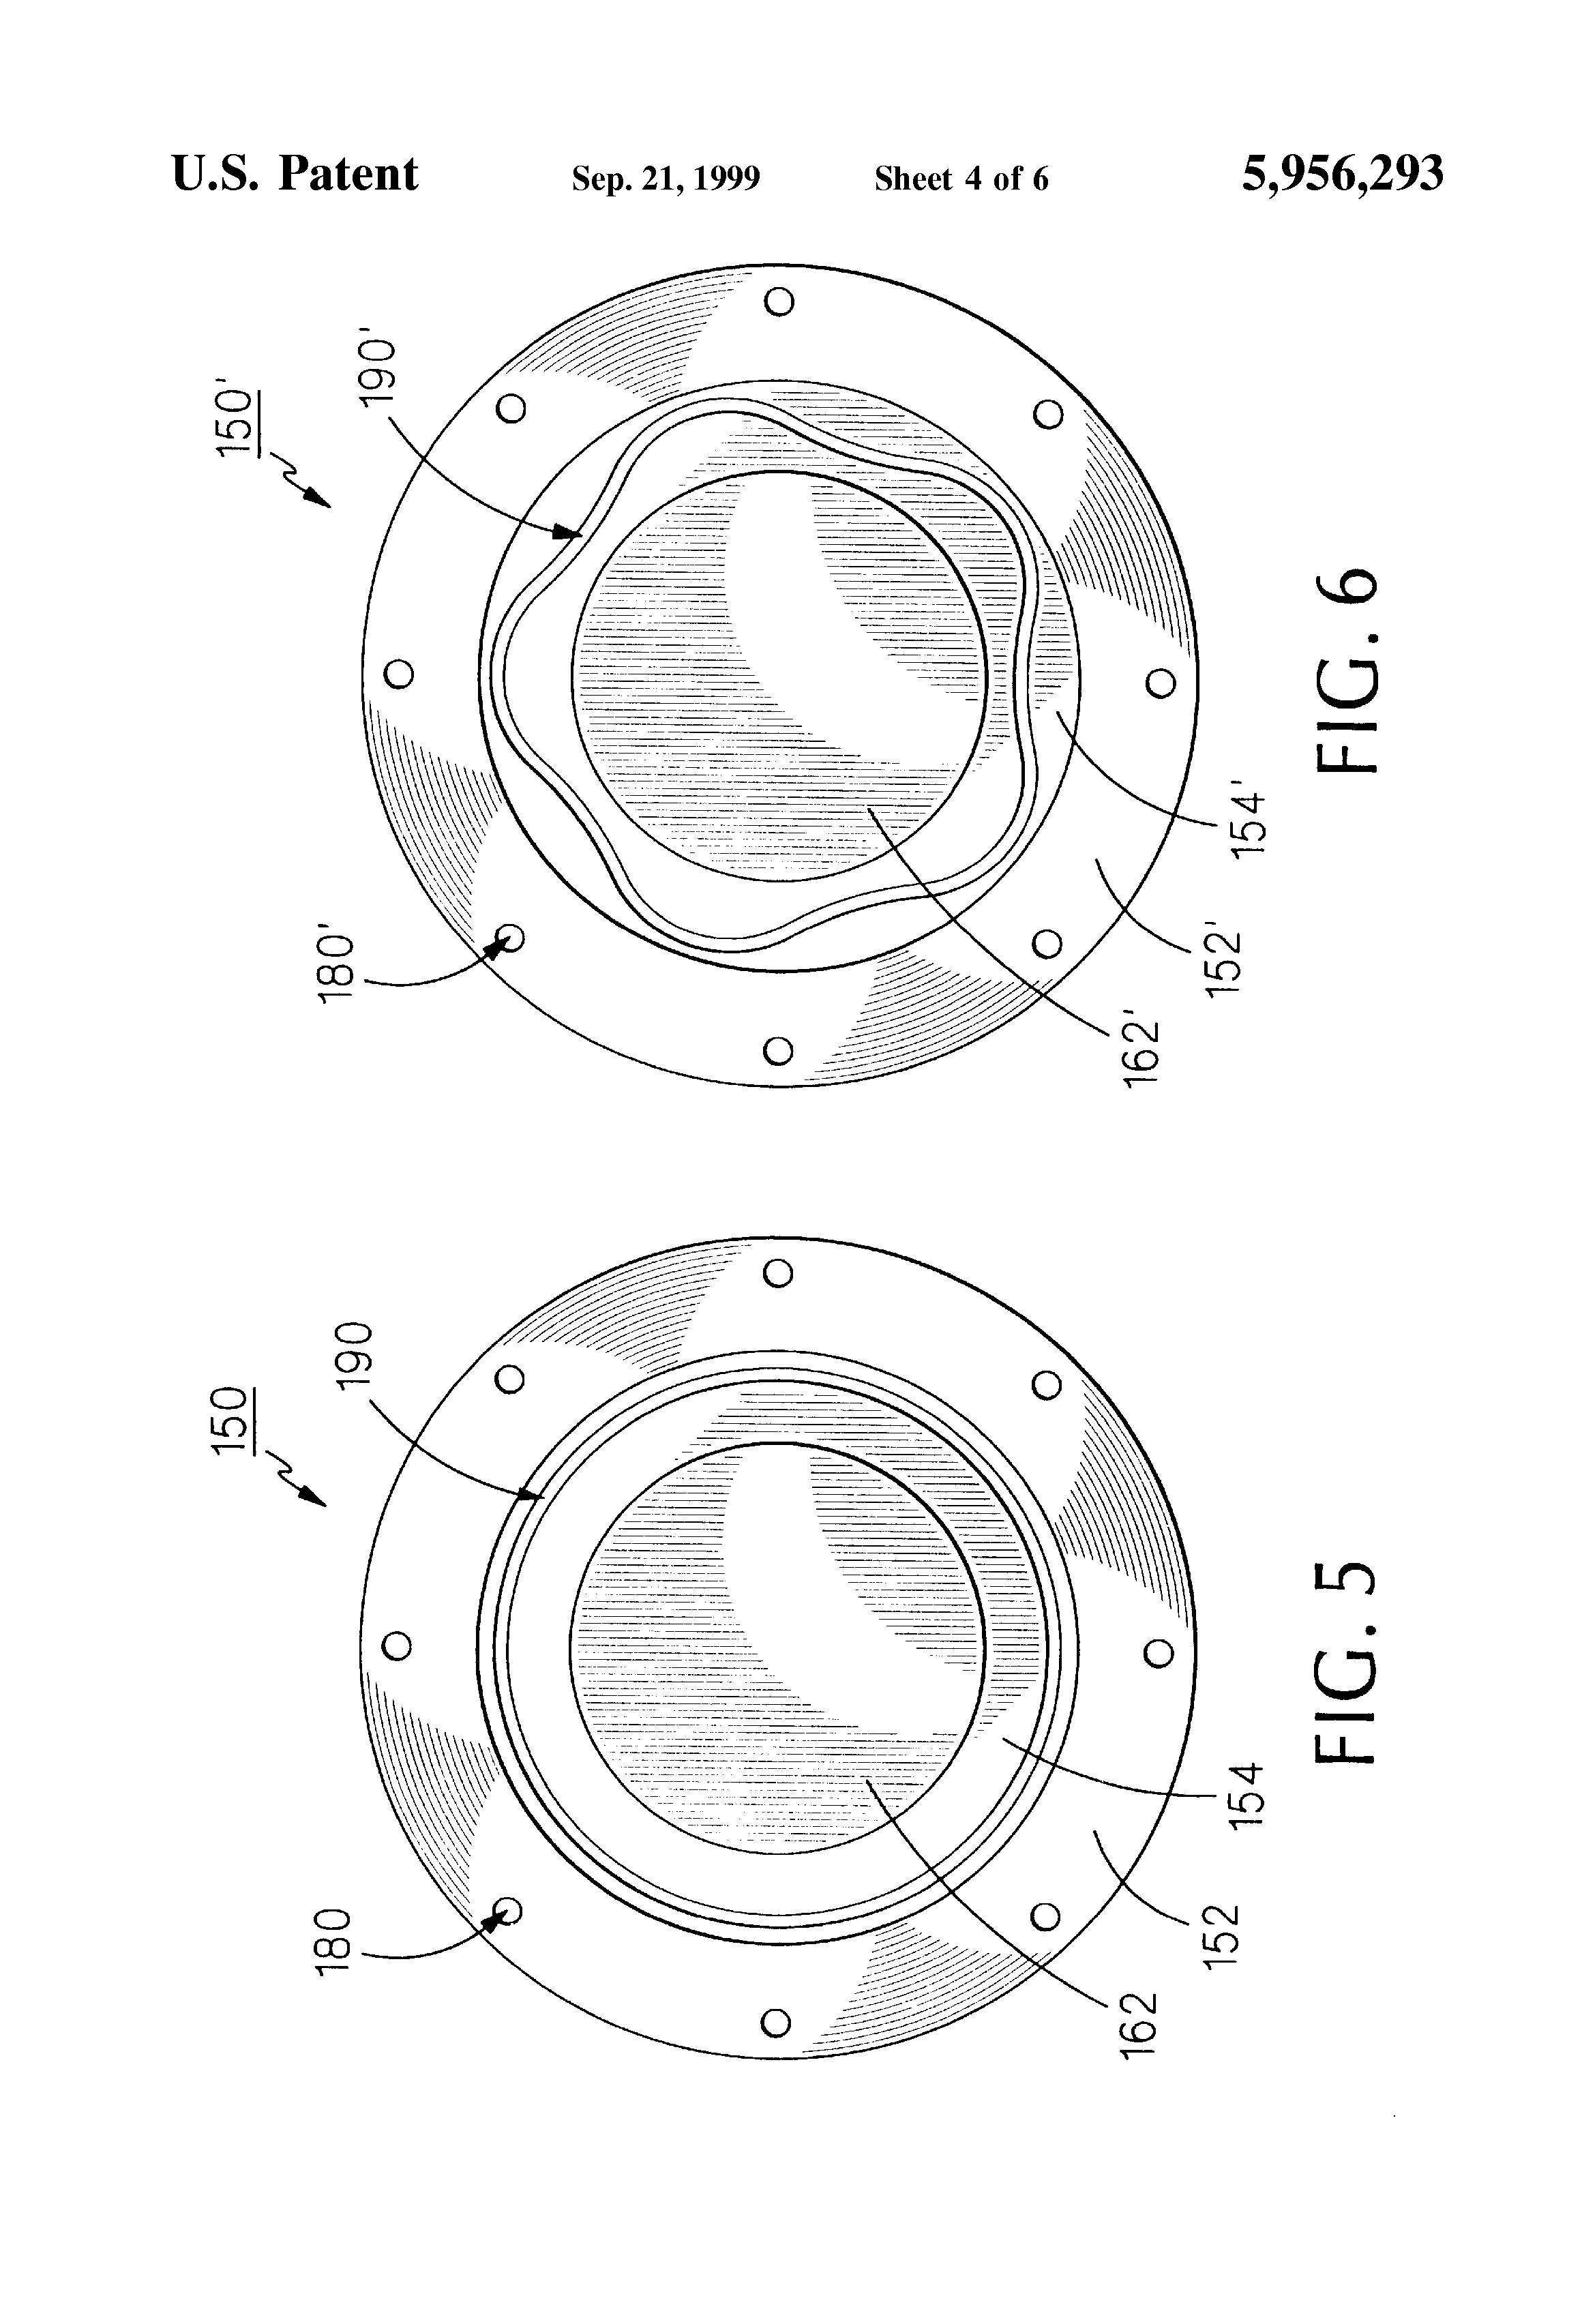 Piezoelectric Transducer Piston Wiring Diagram For Professional Circuit Patent Us5956293 Flexural Plate Sound Having Ultrasound